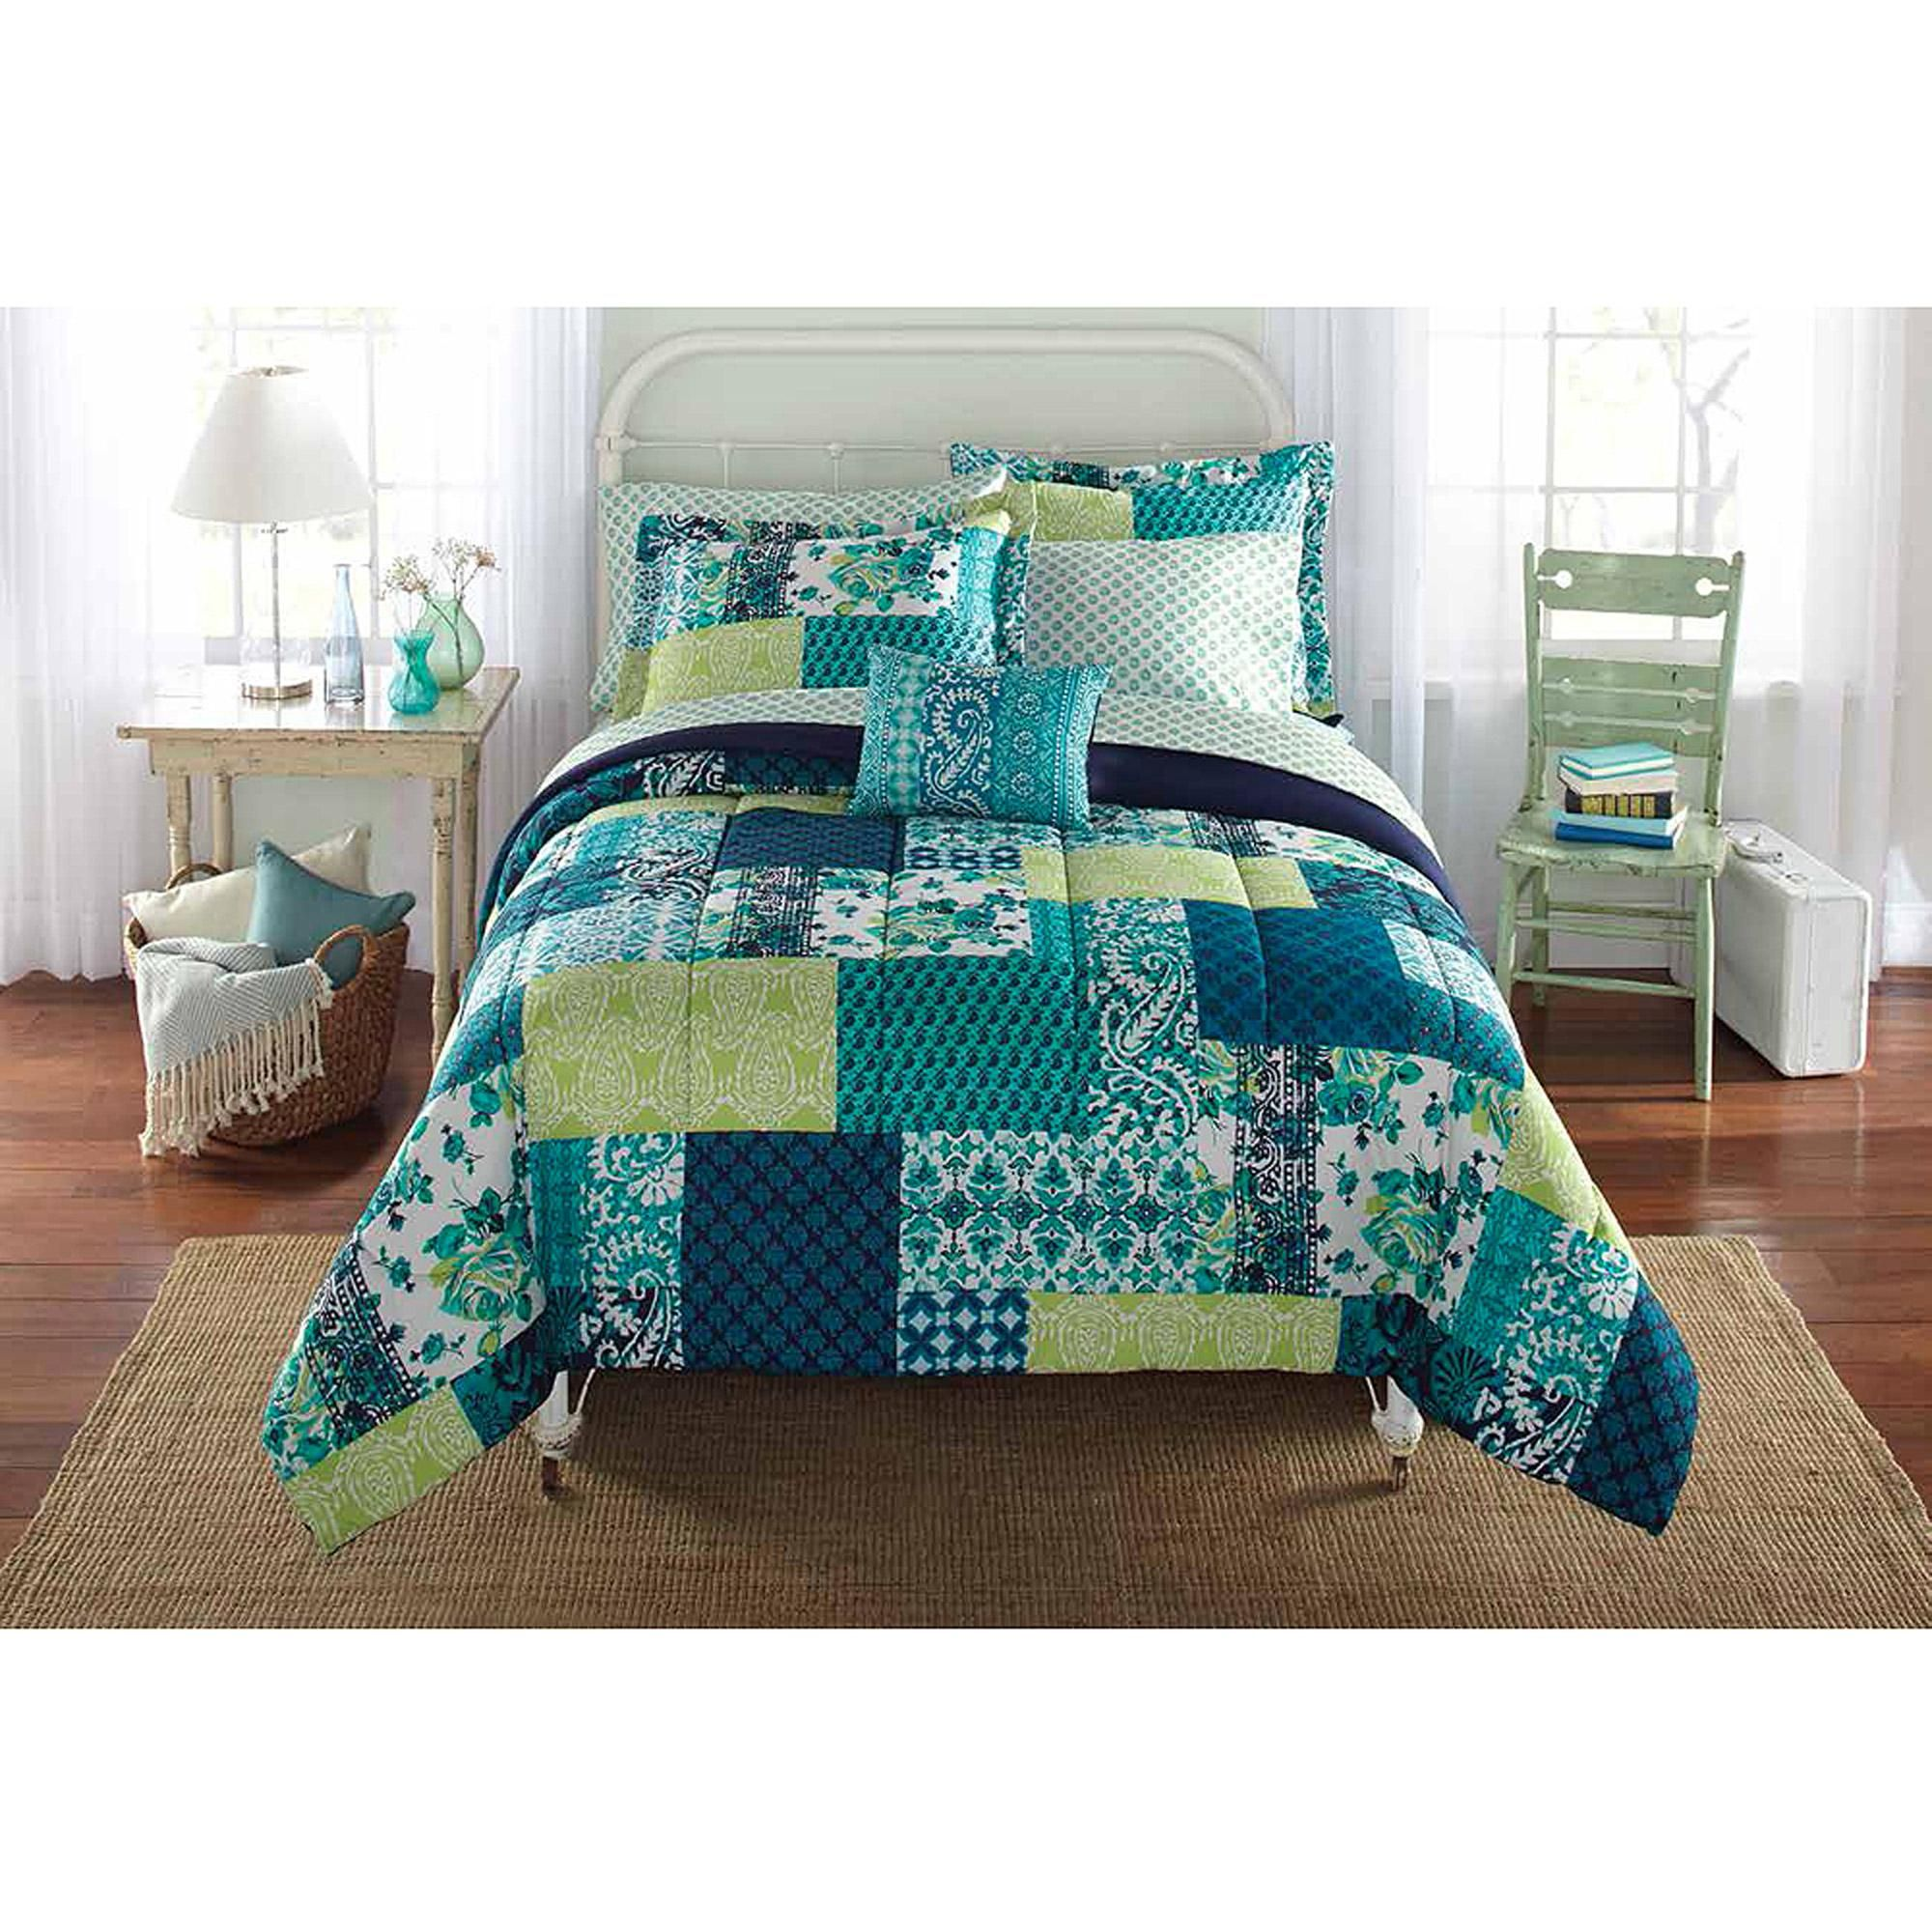 king cal bedding comforter pin set chateau cotton teal piece